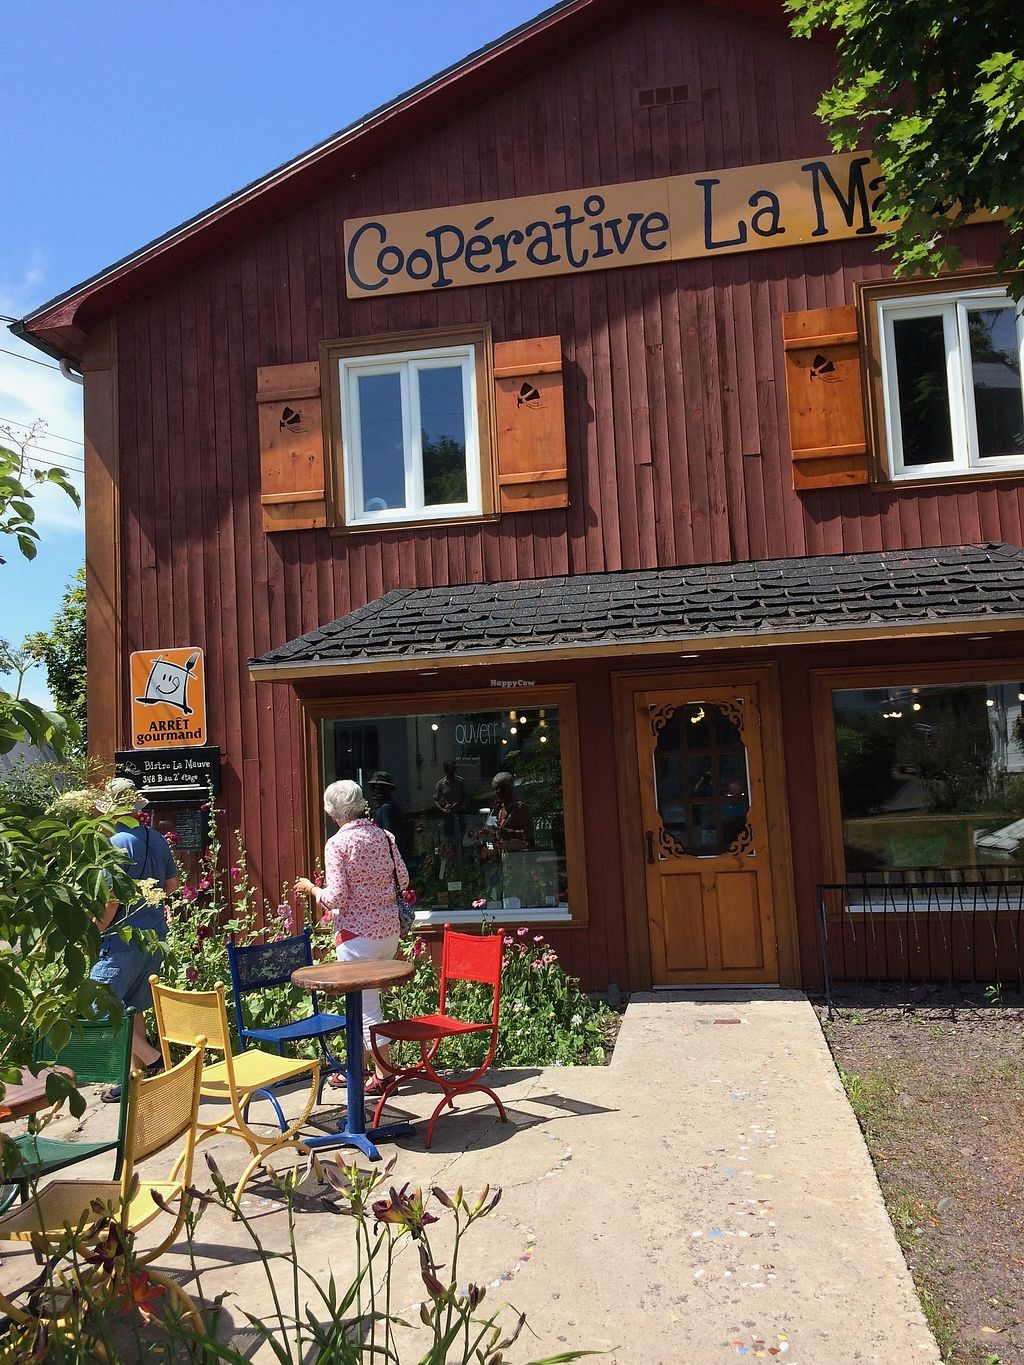 """Photo of Cooperative La Mauve  by <a href=""""/members/profile/tatiasha"""">tatiasha</a> <br/>A beautiful local coop that offers fresh organic produce, a variety of frozen goods, organic beer etc. A mix of vegan and non-vegan items.  <br/> August 5, 2017  - <a href='/contact/abuse/image/97222/289230'>Report</a>"""